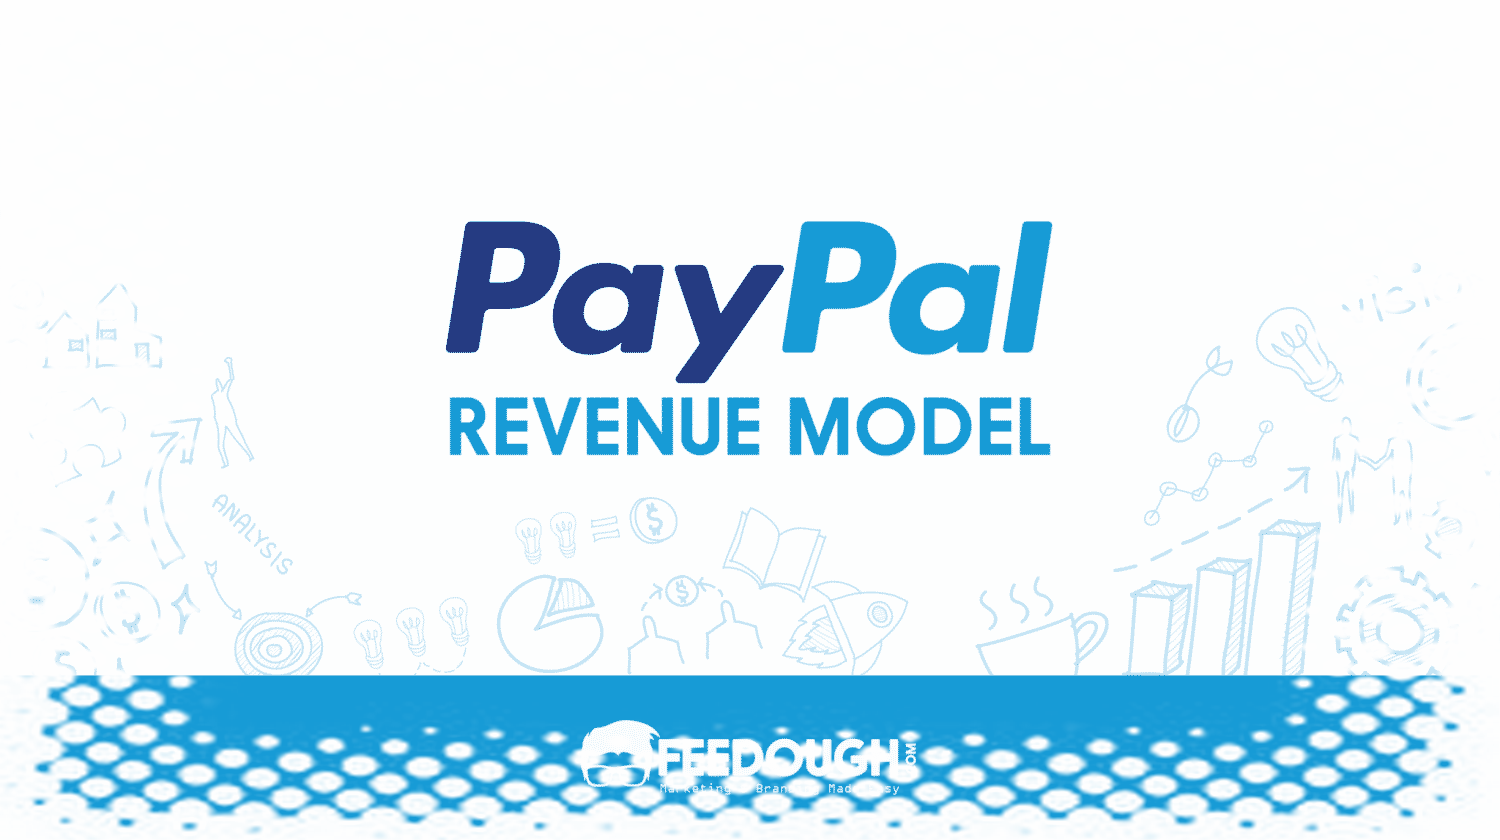 revenue management paypal revenue website revenue operating revenue